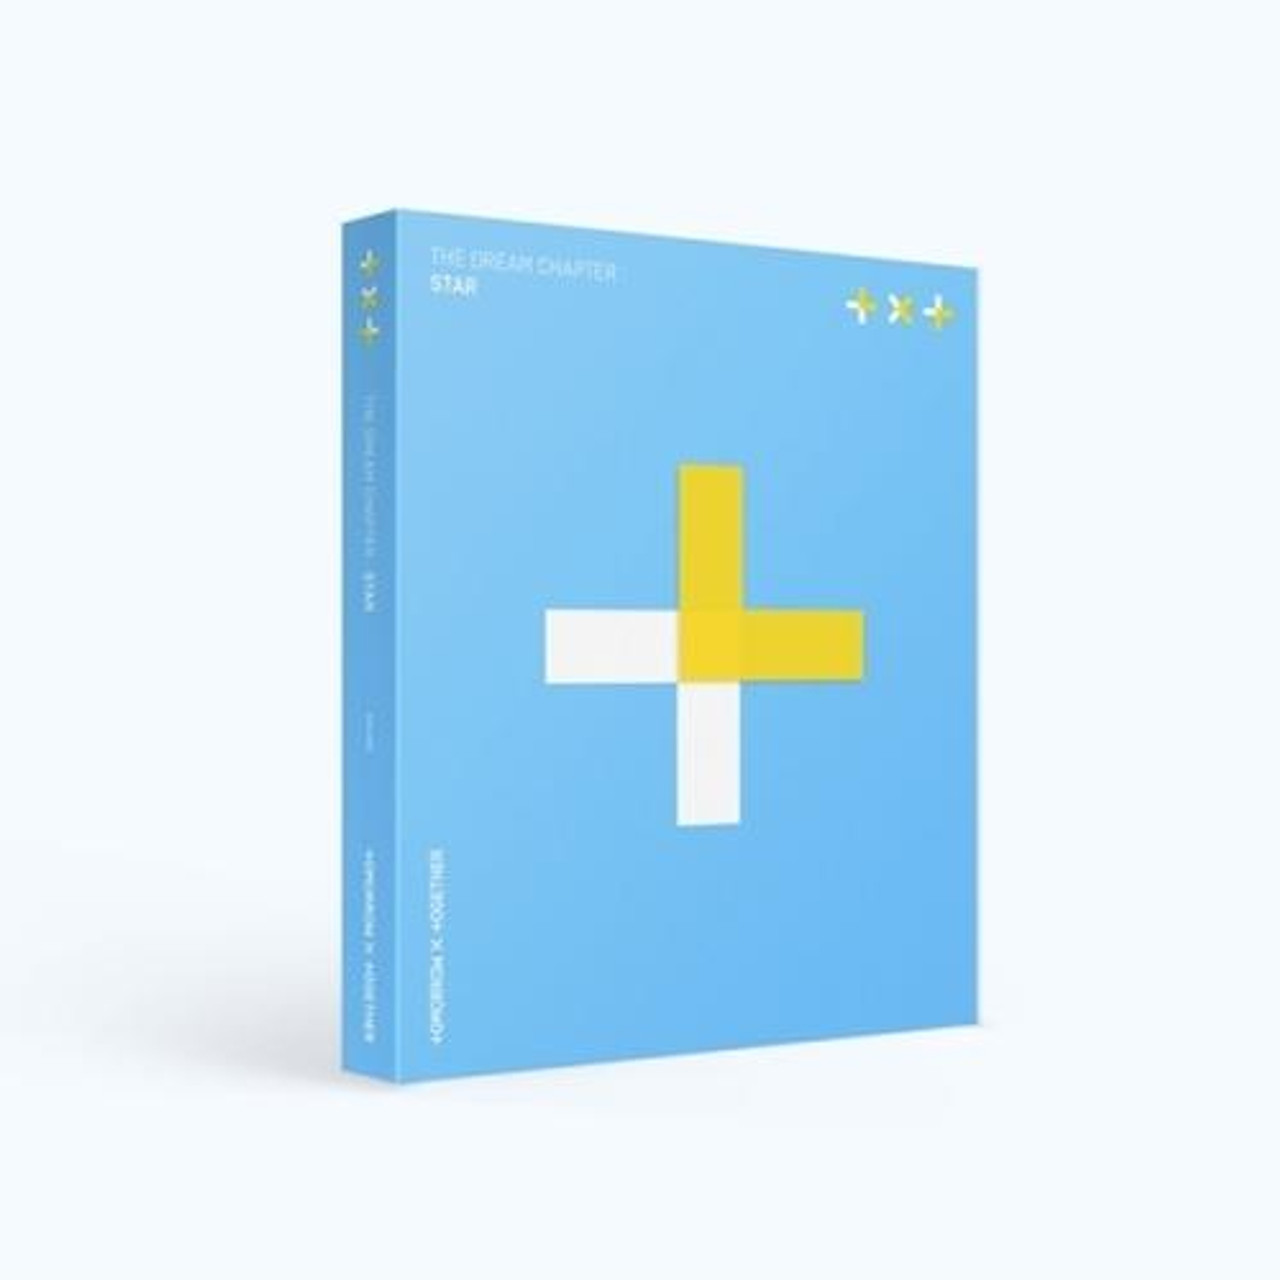 TXT(TOMORROW X TOGETHER) - [THE DREAM CHAPTER: STAR]